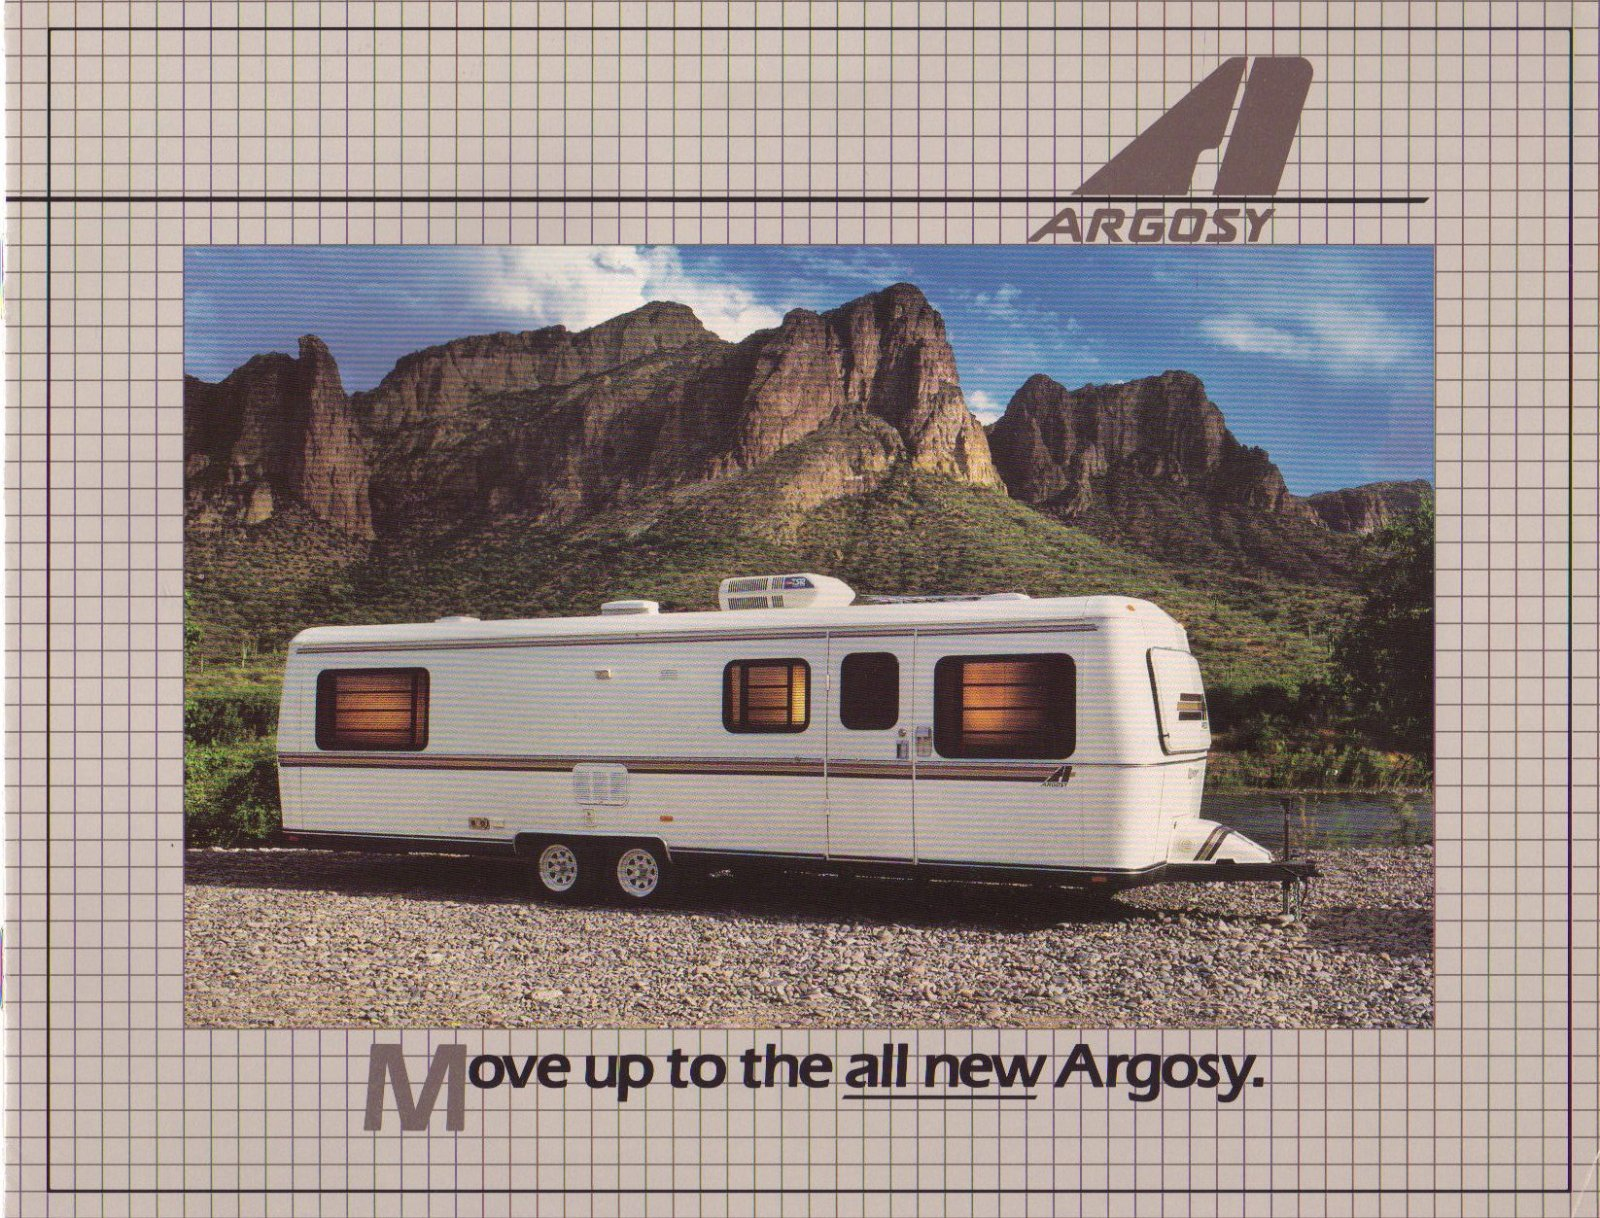 Click image for larger version  Name:1986 Argosy sales brochure.jpg Views:251 Size:501.3 KB ID:73038